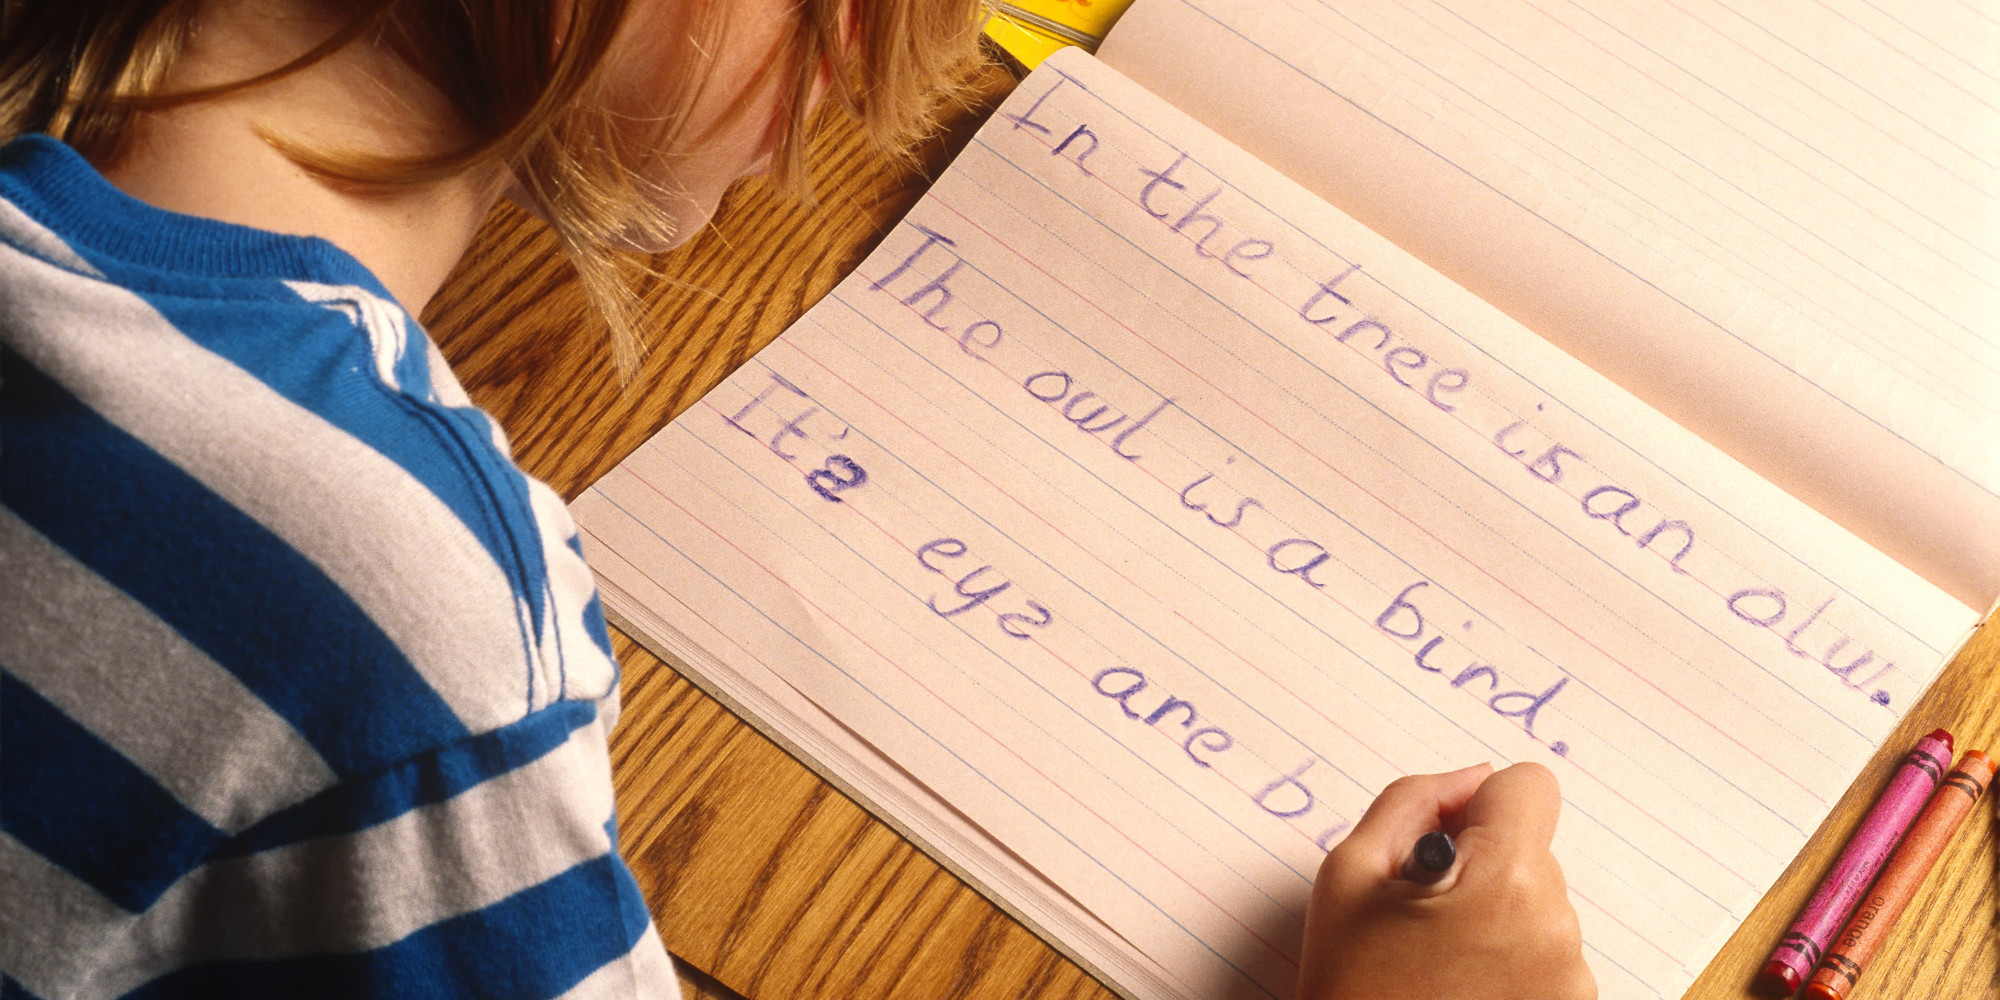 dyslexia  our children deserve an honest chance